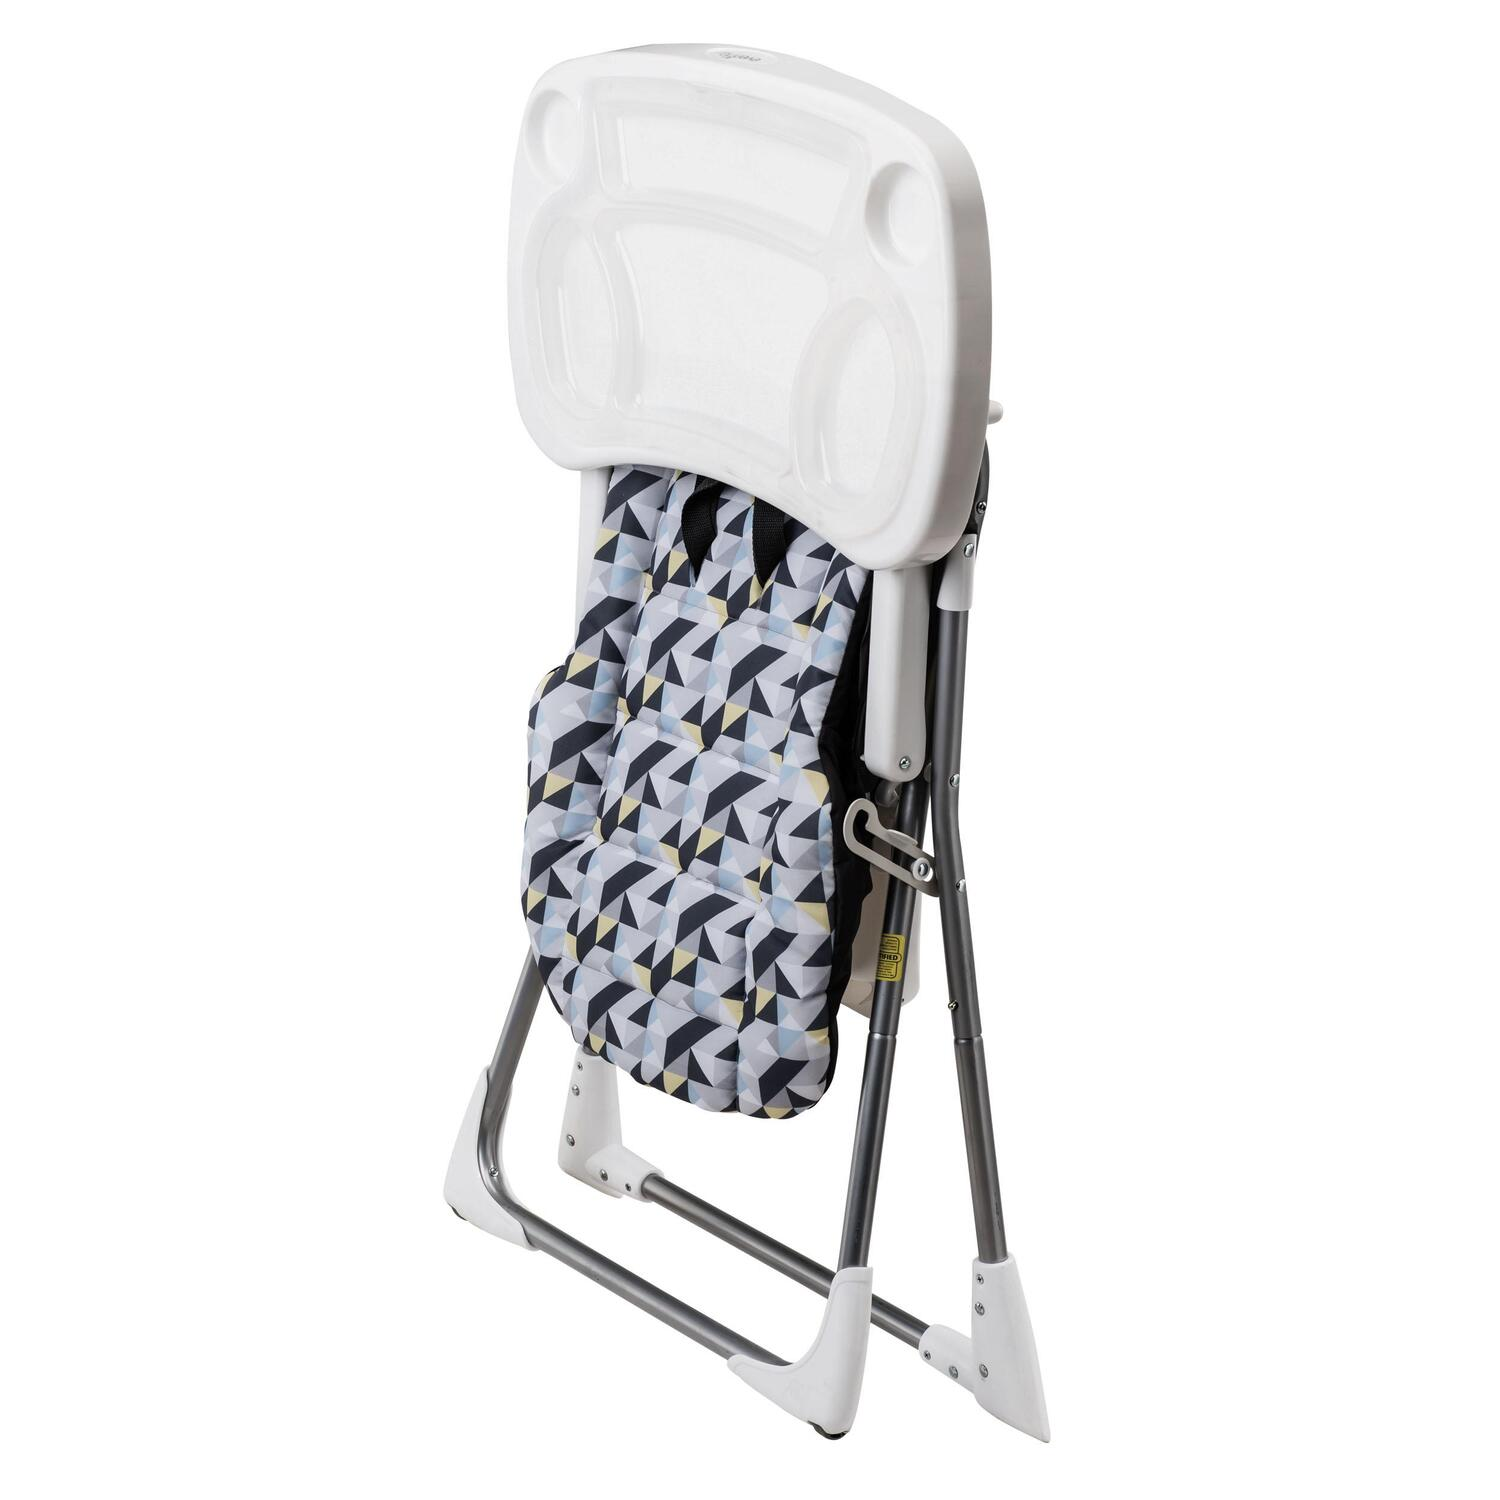 evenflo compact high chair hanging egg chairs fold by oj commerce 55 99